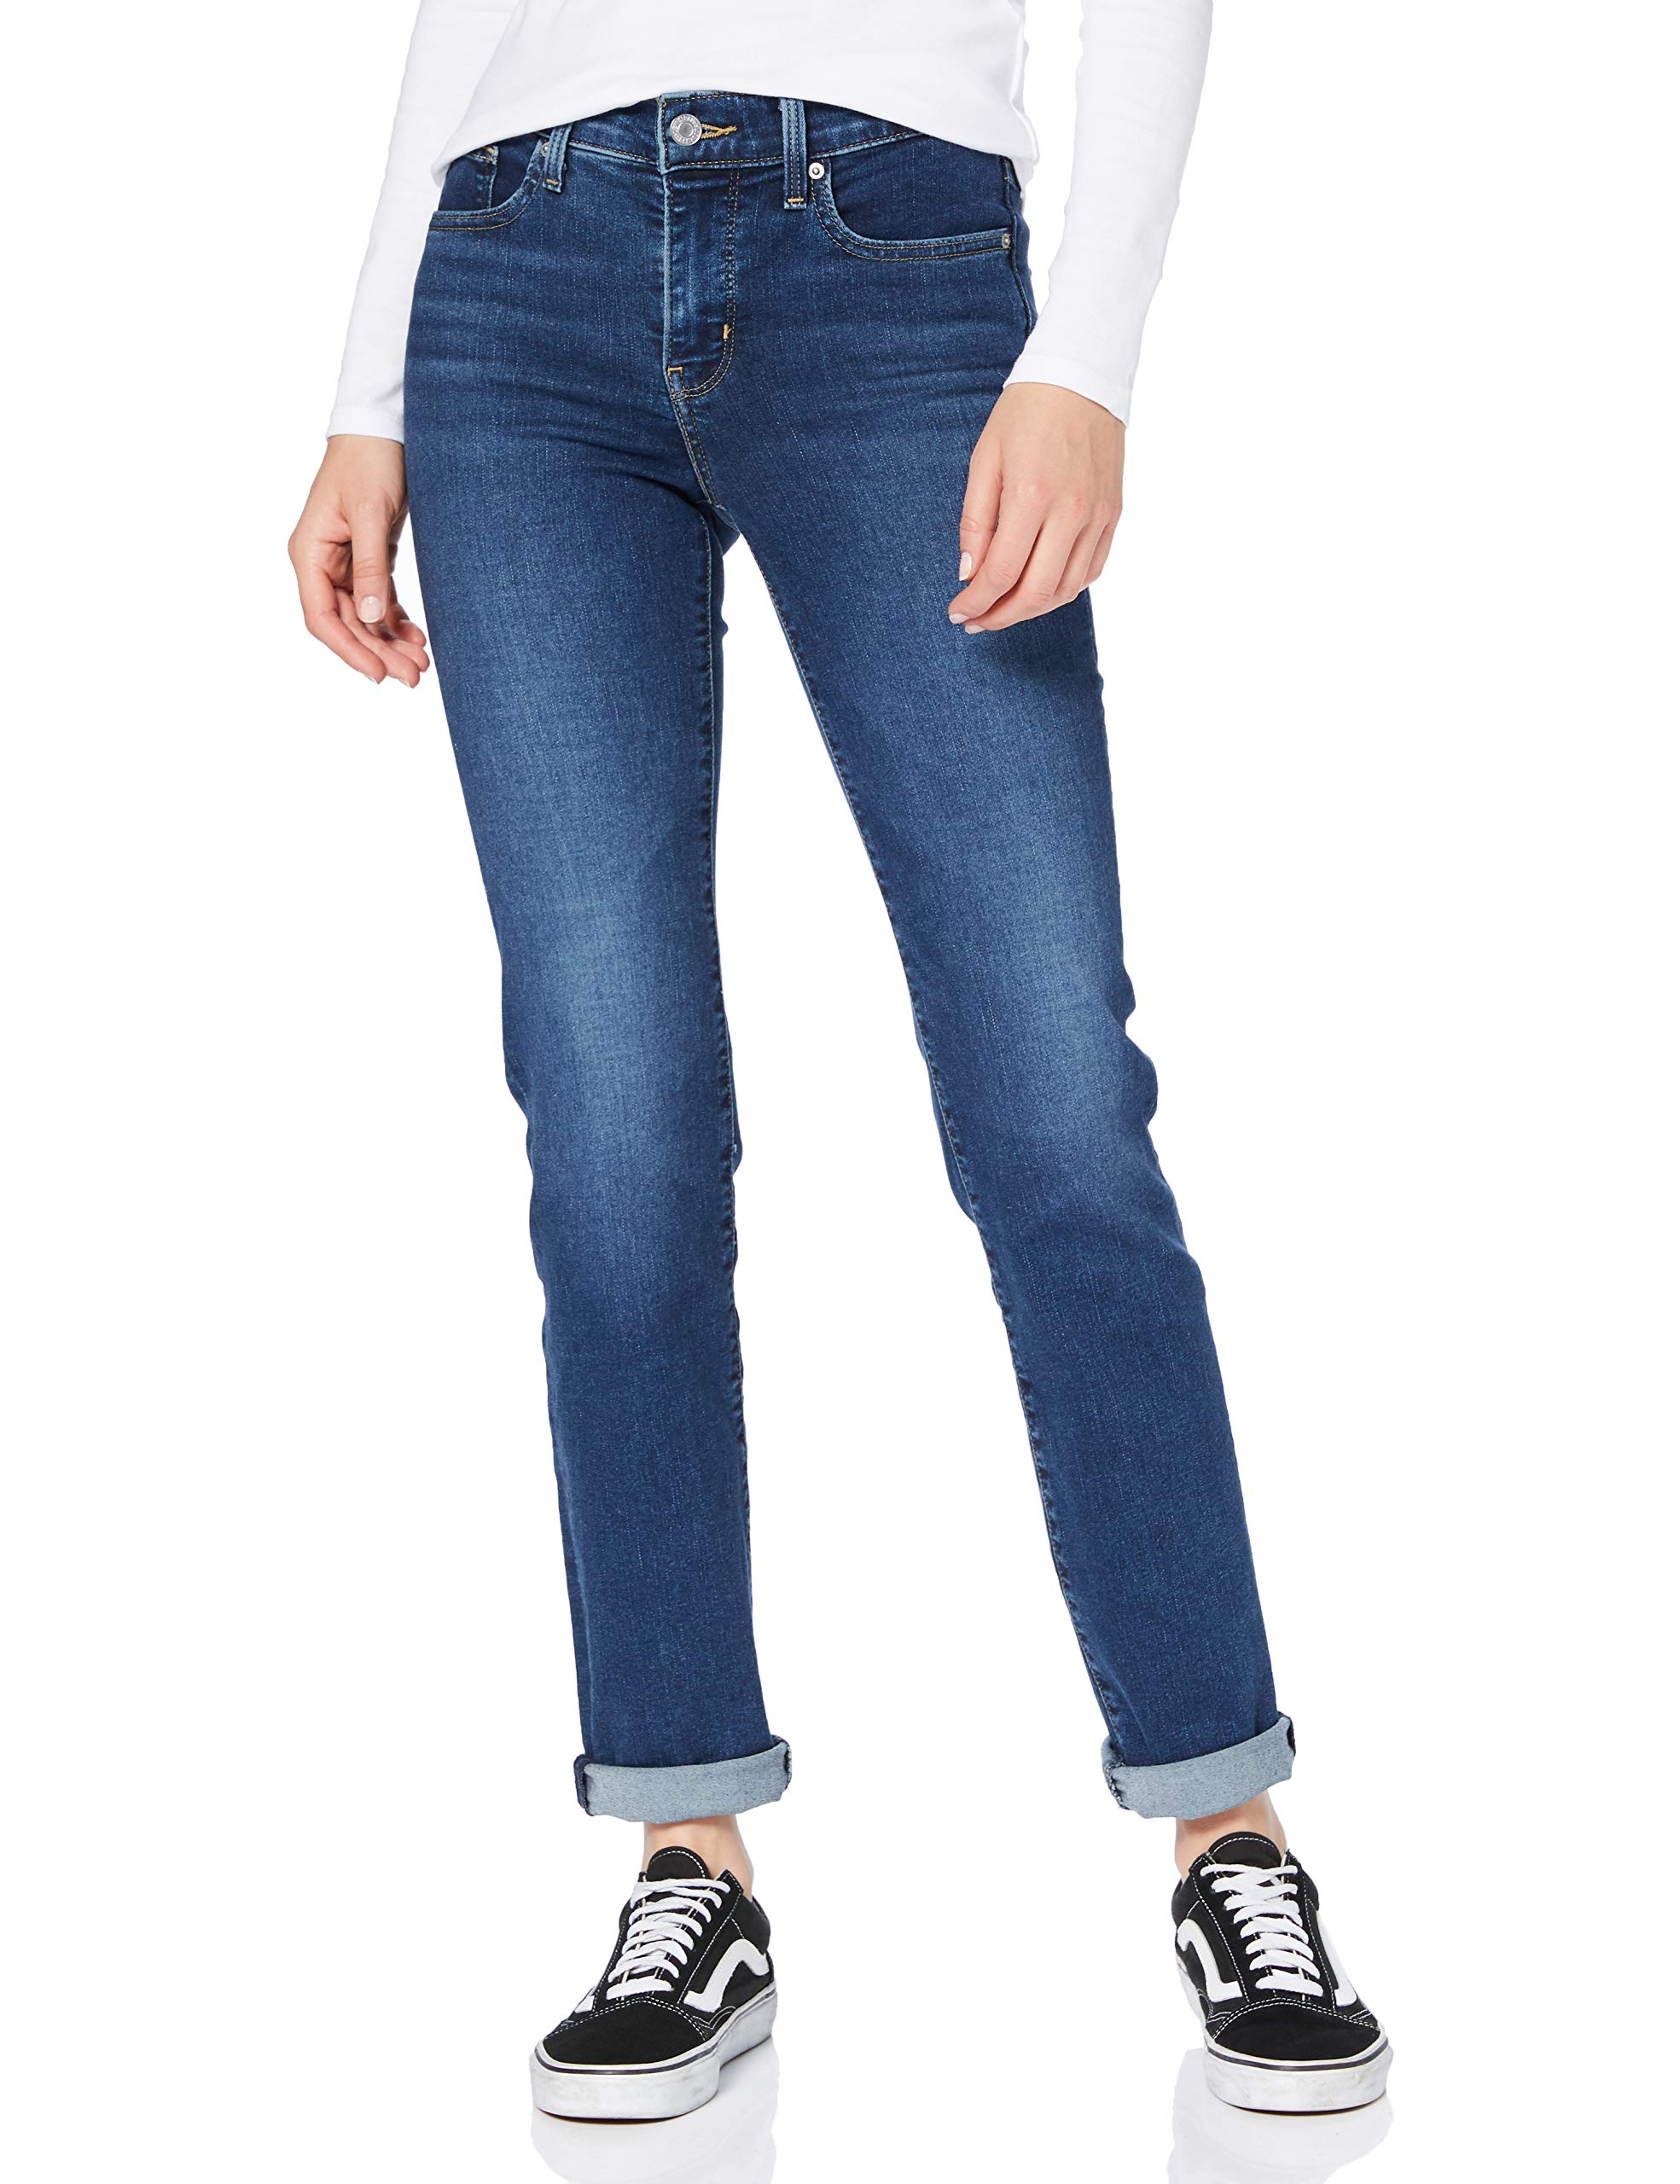 l34taille Straight Fabricant30 314 Levi's Shaping Jean 0082W30 Nights 34Femme DroitBleuparis shQCdxtr